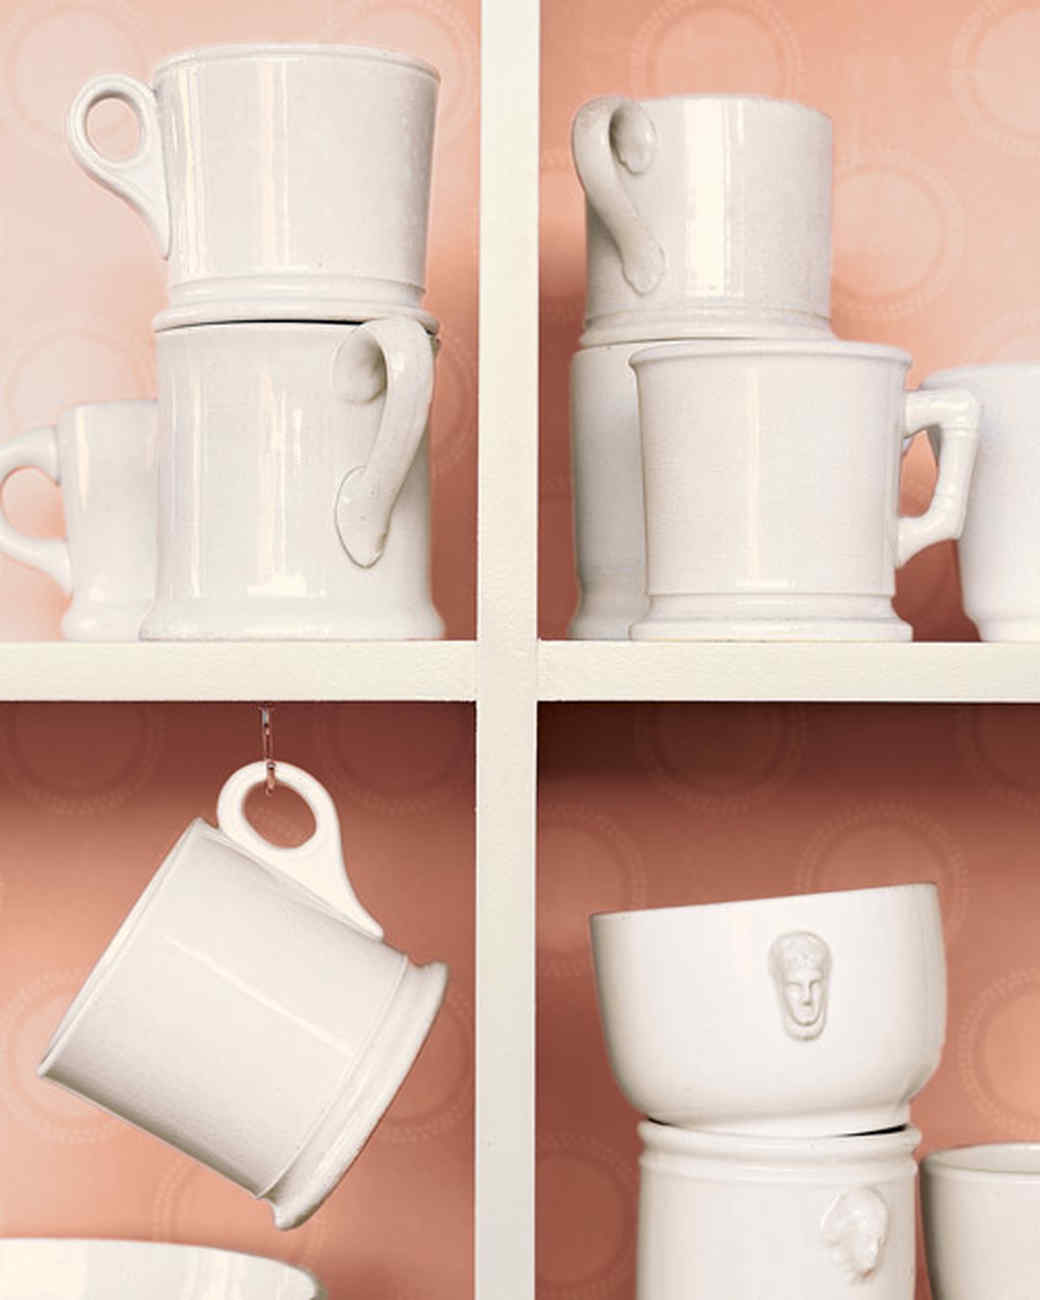 ml0204we_0204_ironstone_ware.jpg